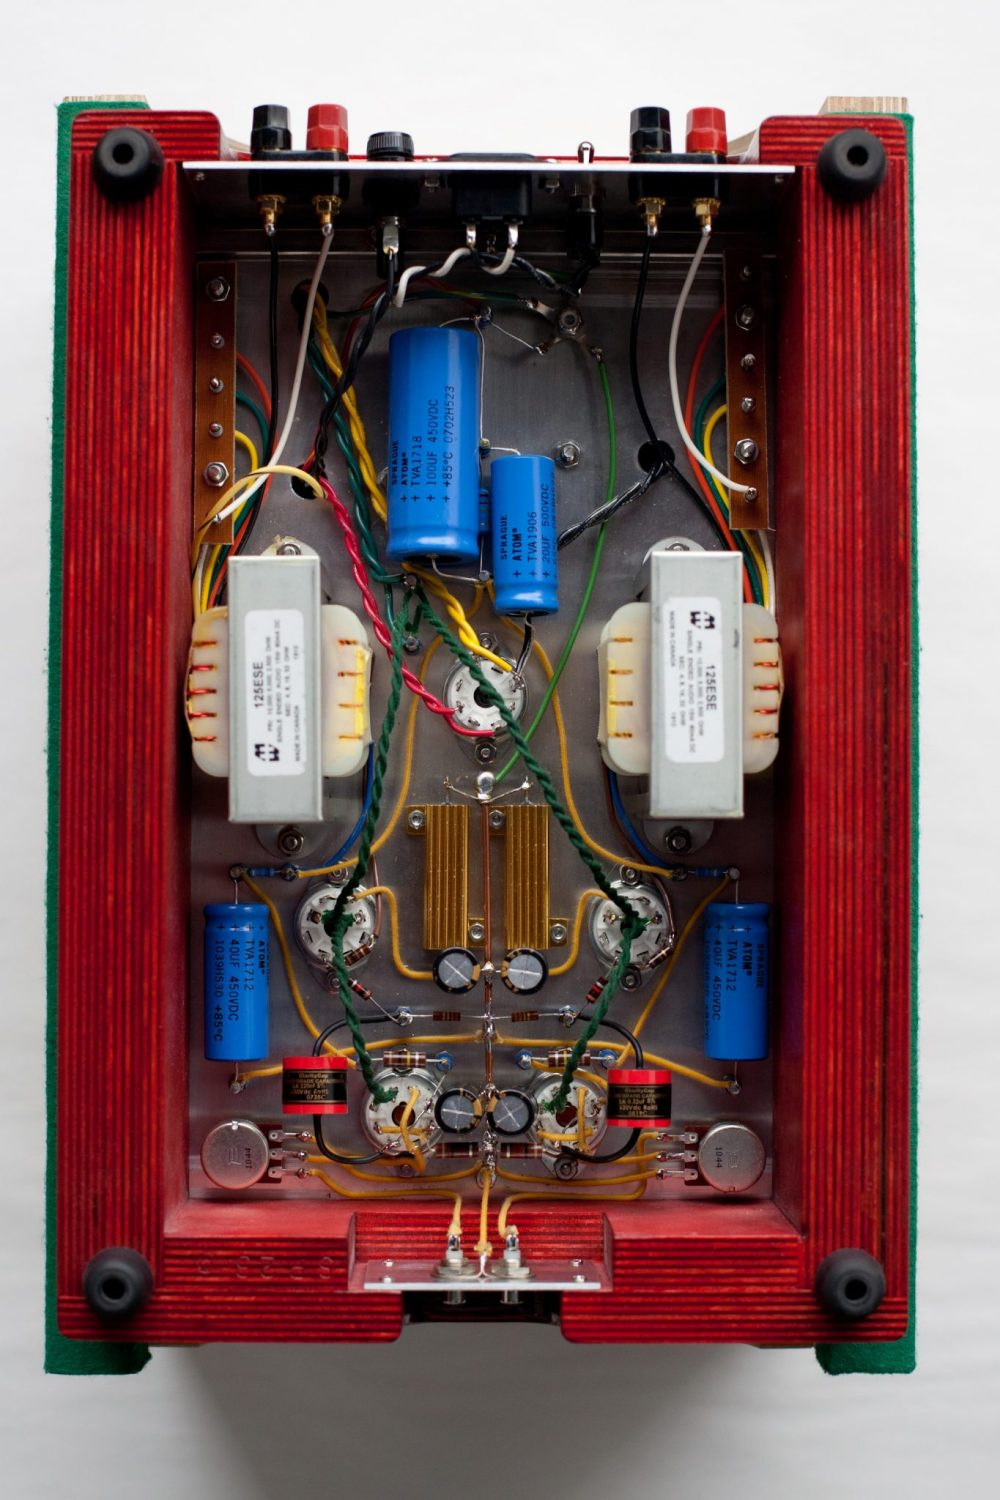 Feel free to peruse the instruction book for this lovely kit: Instruction  Book for Specimen Single Ended Stereo Tube Amp